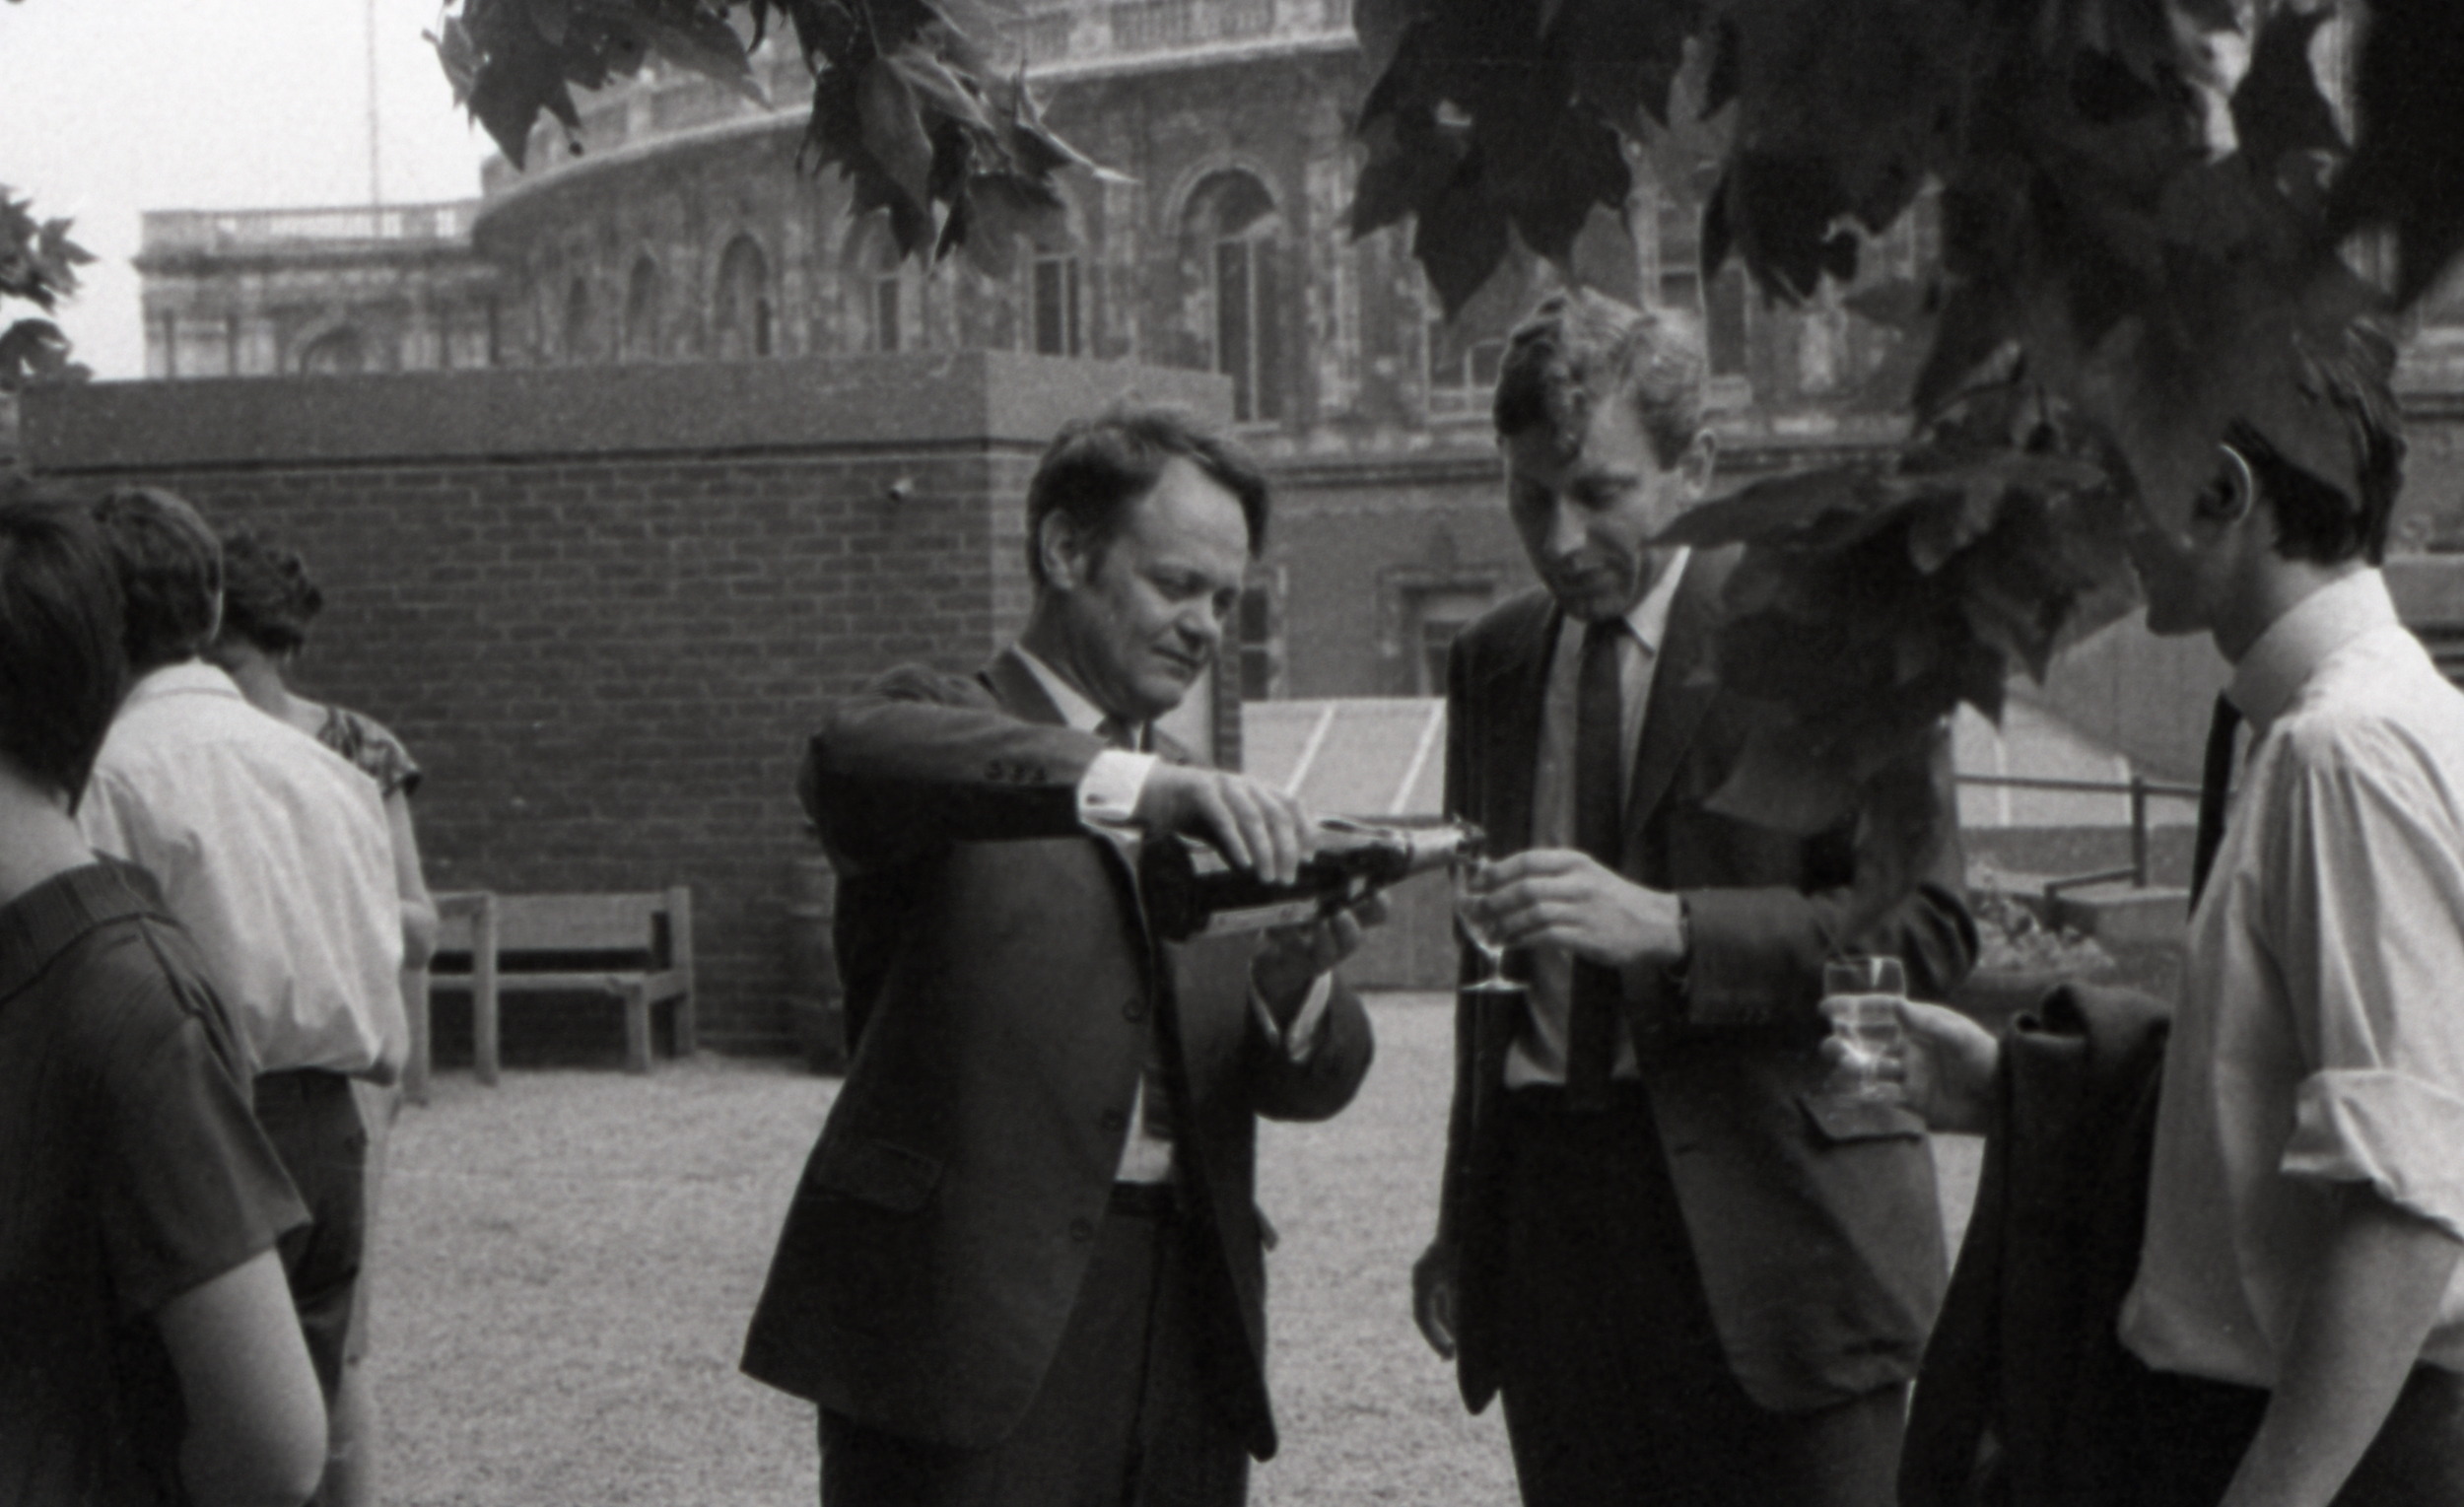 Archer celebrating the award of his Doctorate on the roof of the Royal College of Art, probably in 1968. From the Agnew Archive, Royal College of Art, London.